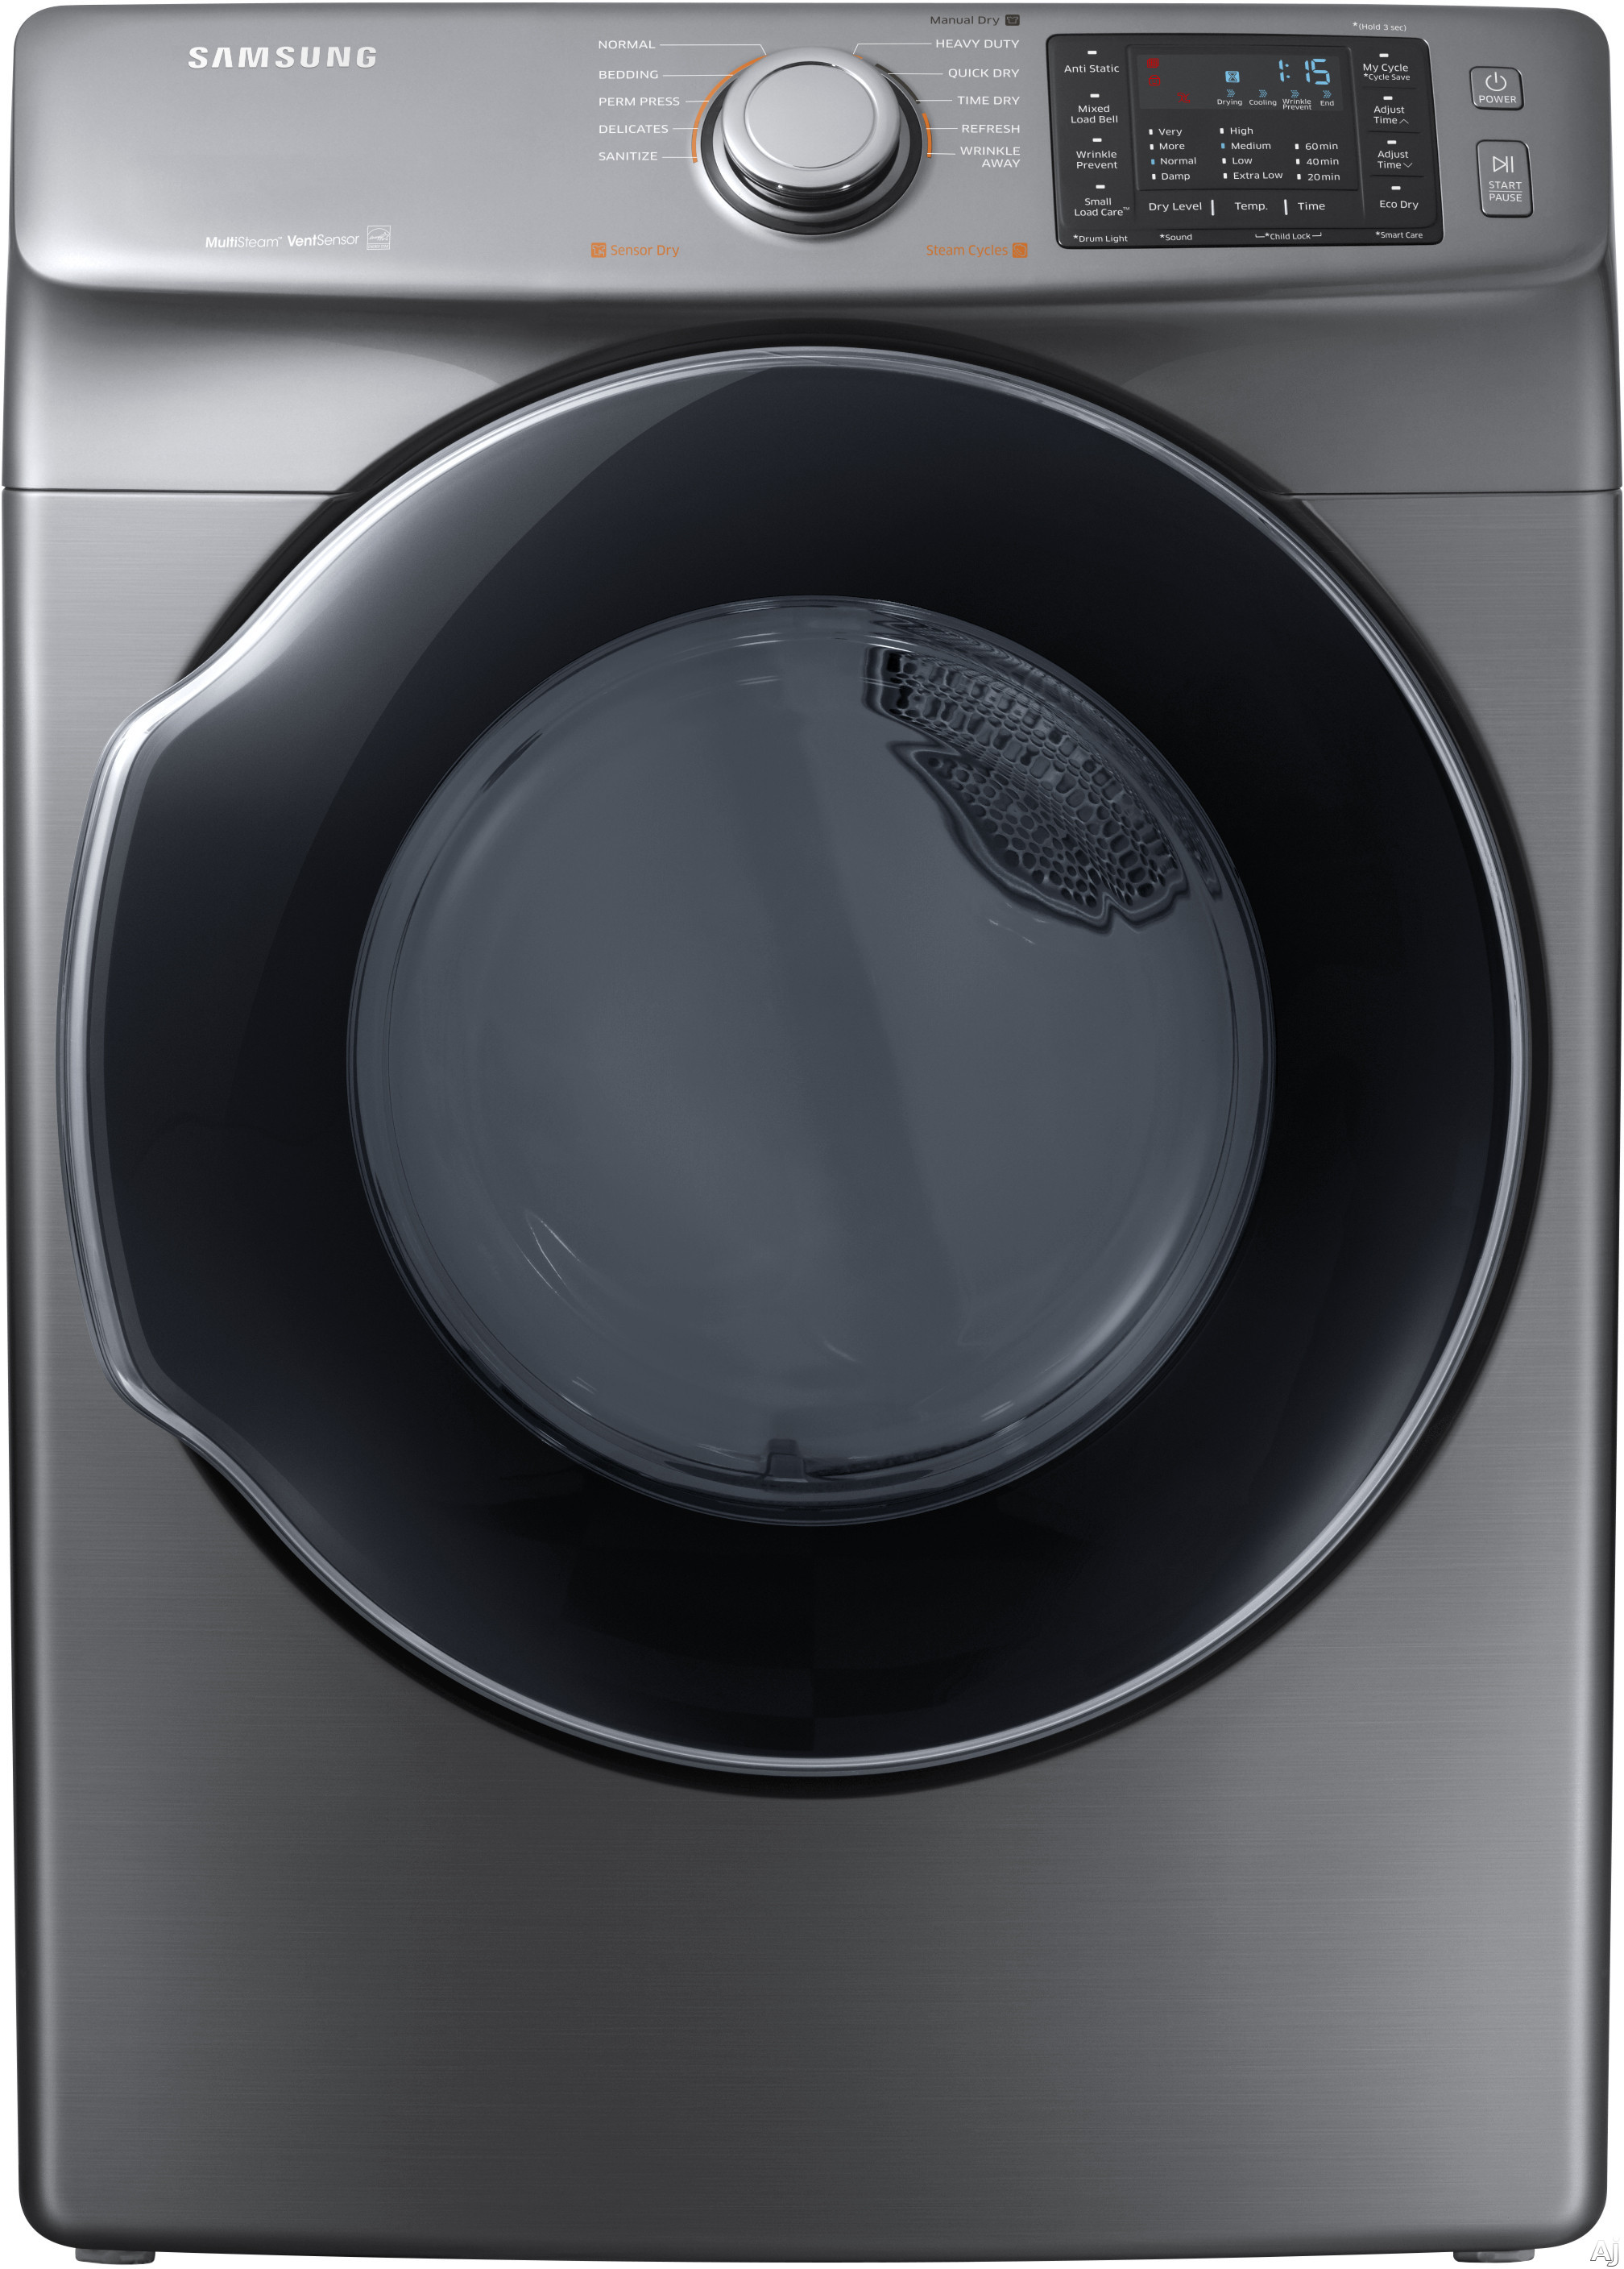 Image of Samsung DVG45M5500P 27 Inch Gas Dryer with Multi-Steam™ Technology, Wrinkle Prevent Option, Sensor Dry, 10 Dry Cycles, My Cycle Options, Anti-Static, Smart Care, 4-Way Venting, Reversible Door, Eco Dry, ENERGY STAR® and 7.5 cu. ft. Capacity: Platinum